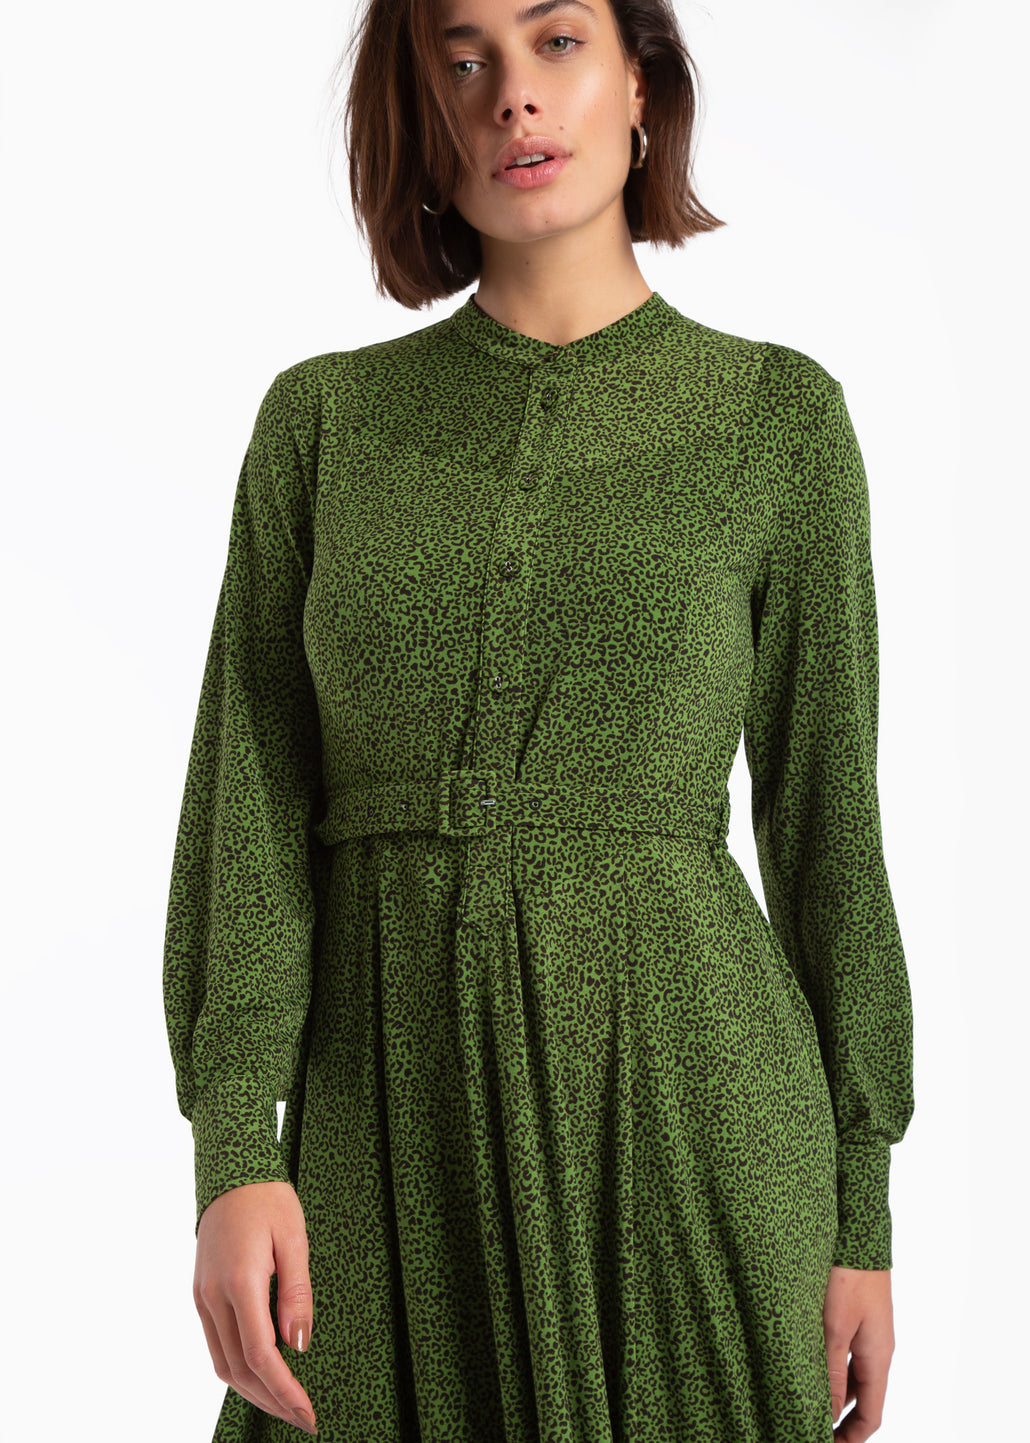 Tricot jurk met jungle dessin